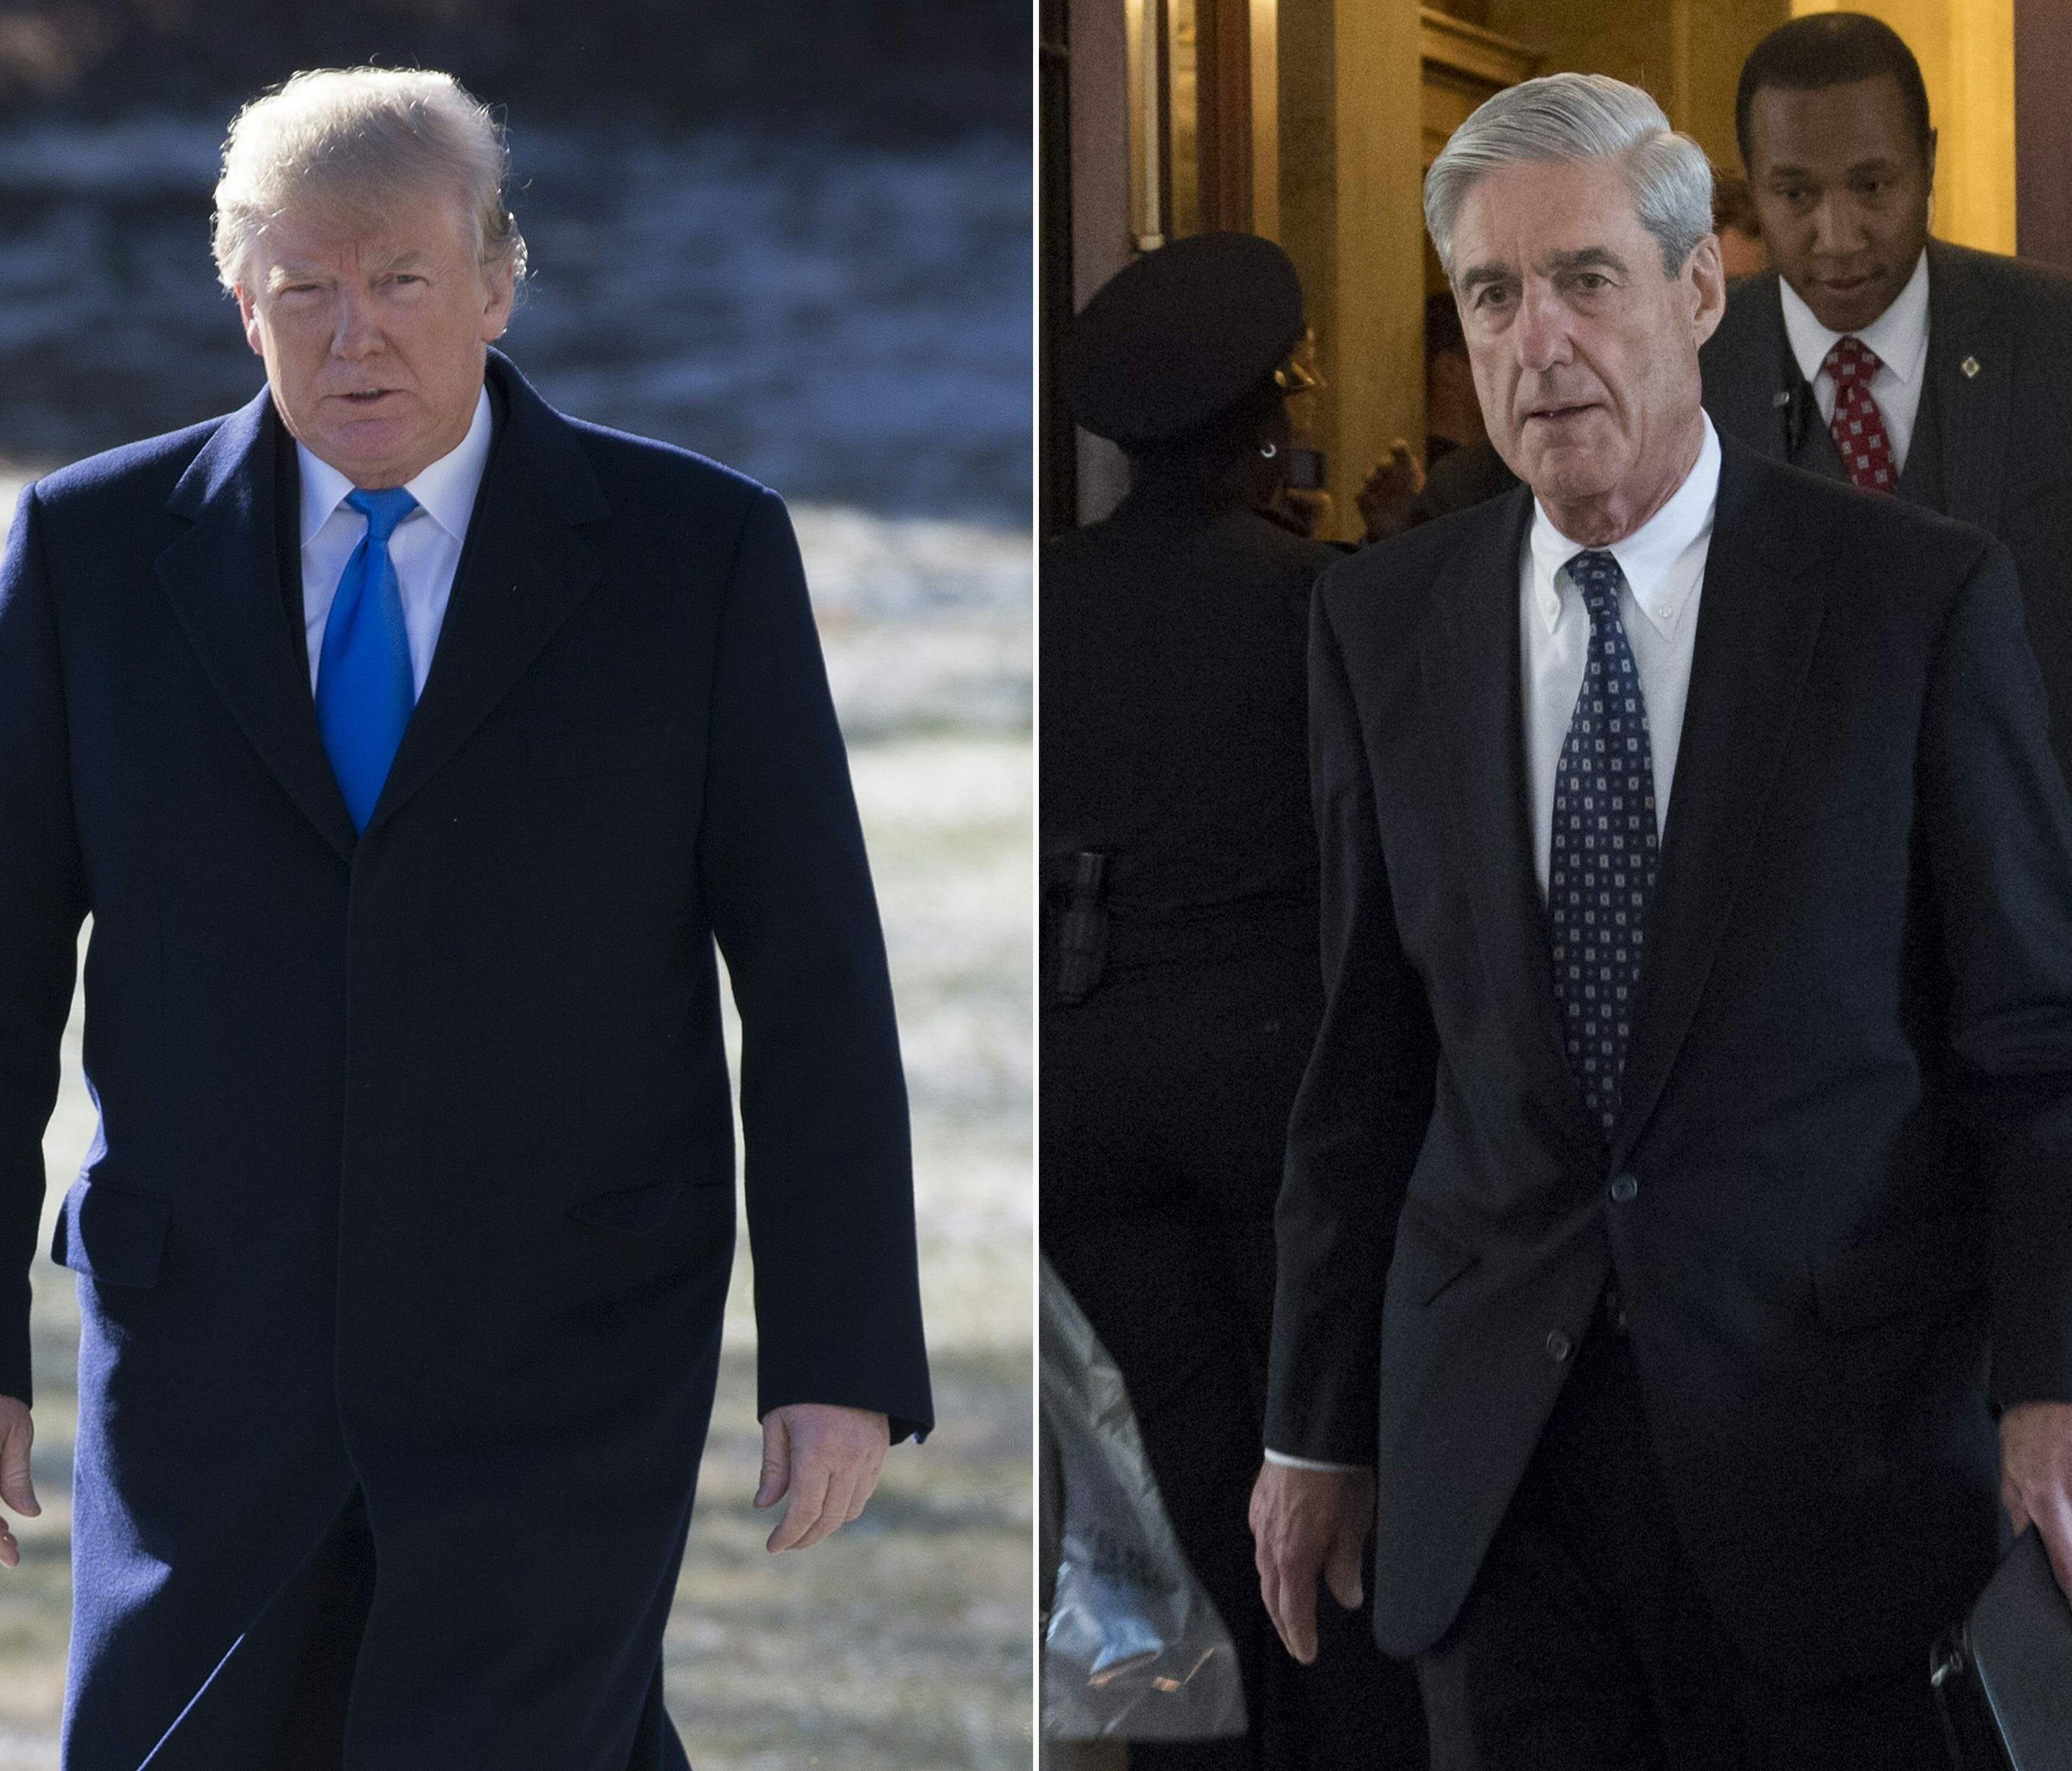 President Trump (left) and special counsel Robert Mueller (right).